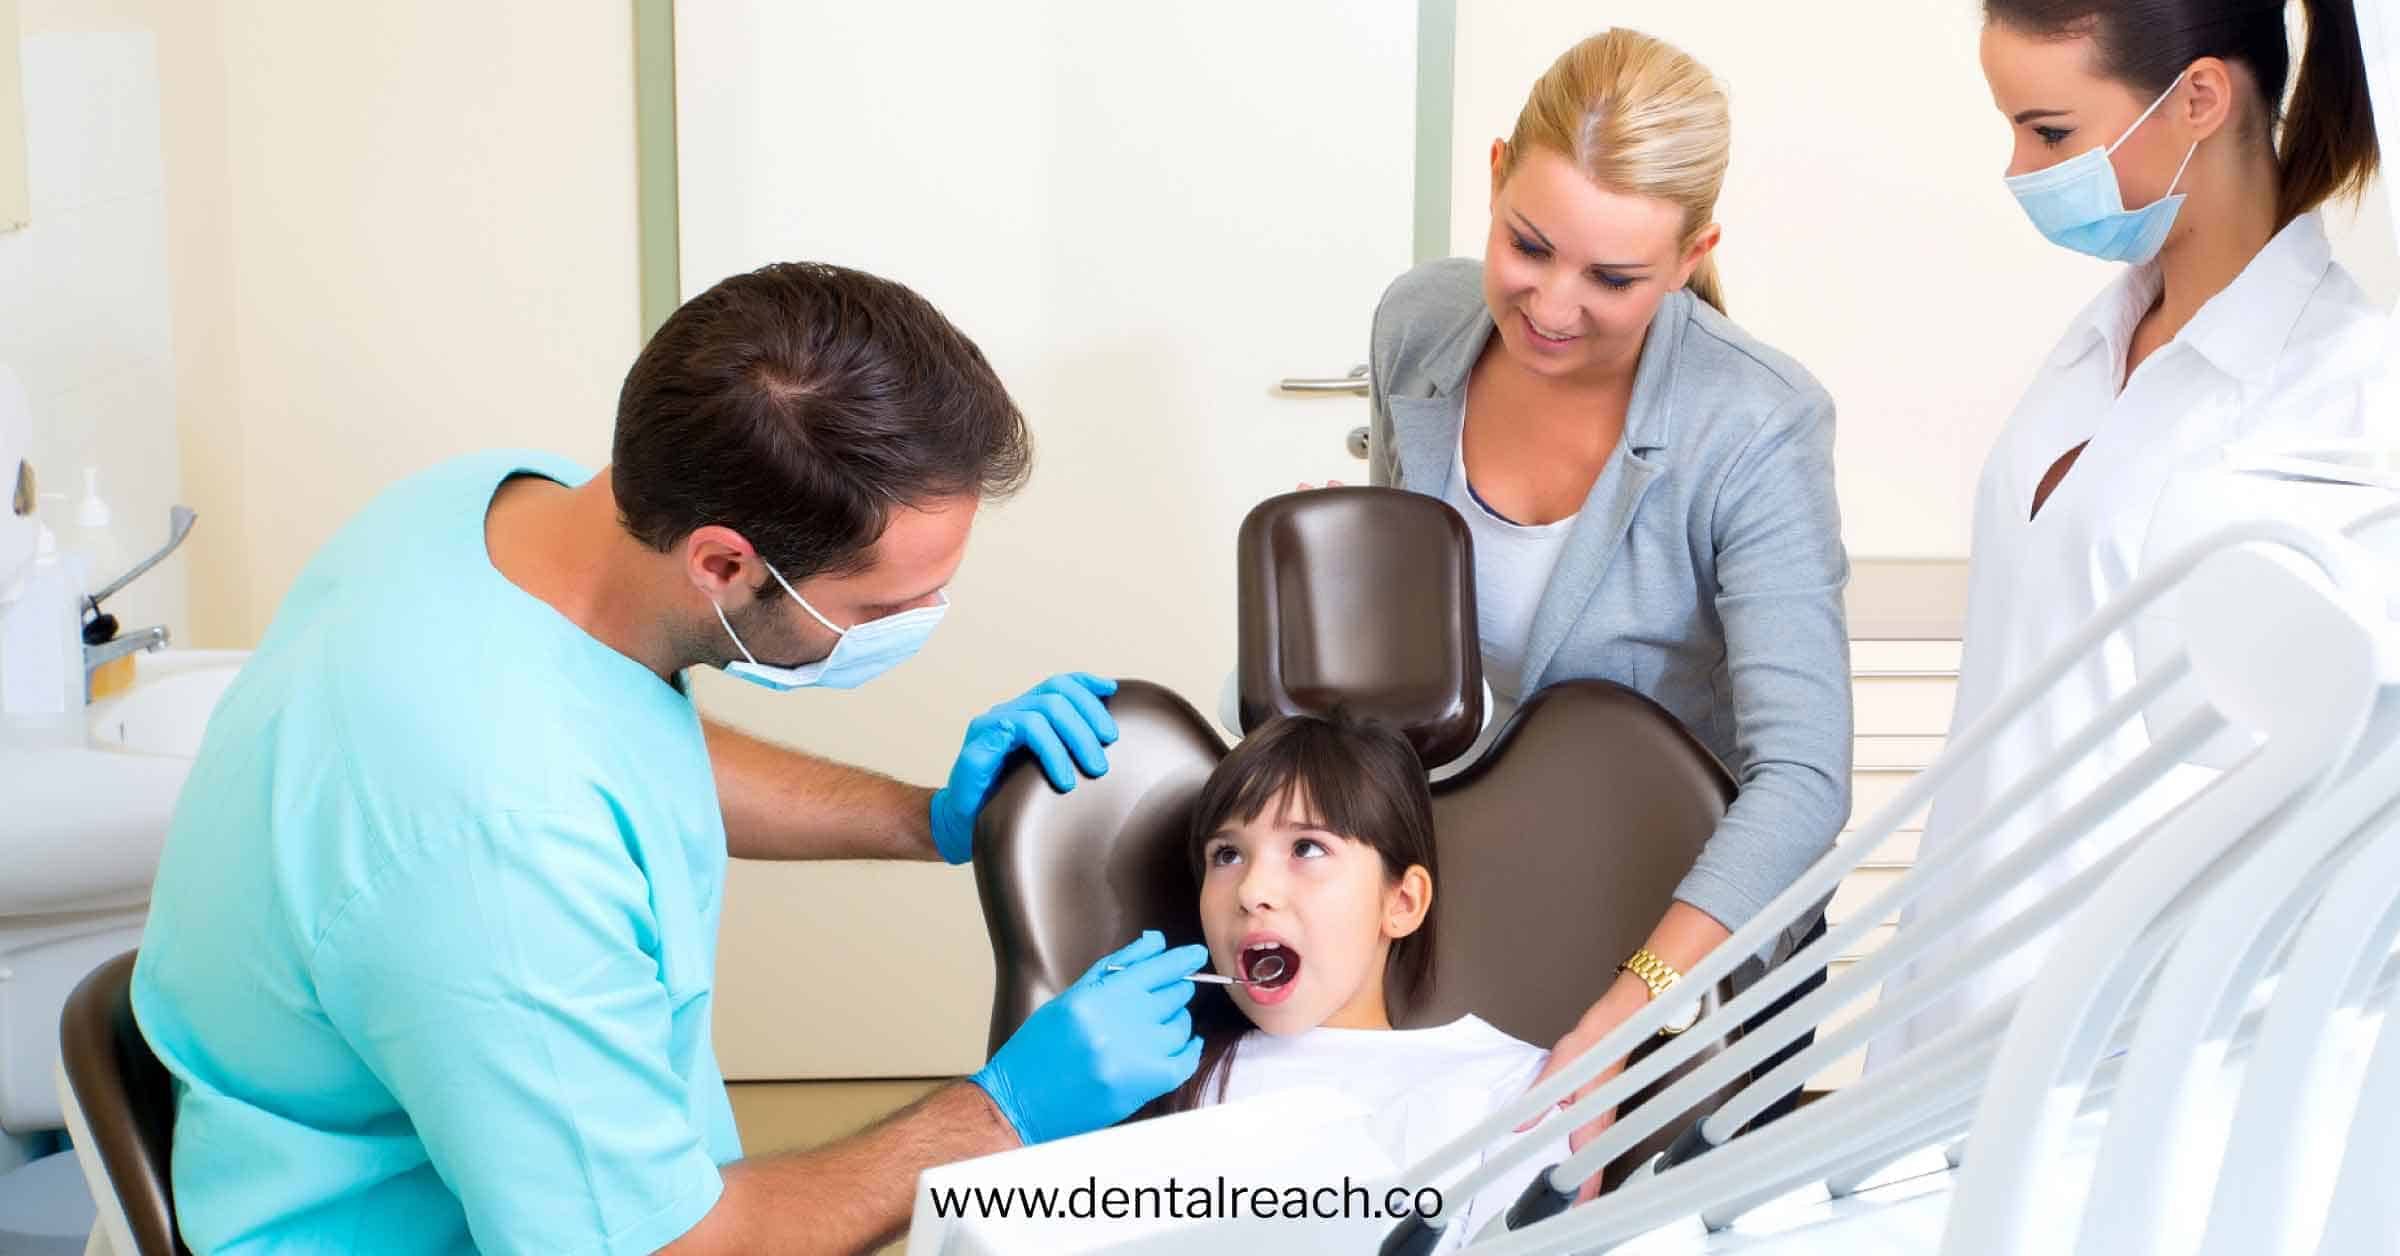 Anaesthesia and Sedation for Your Child: Questions to Ask Your Dentist